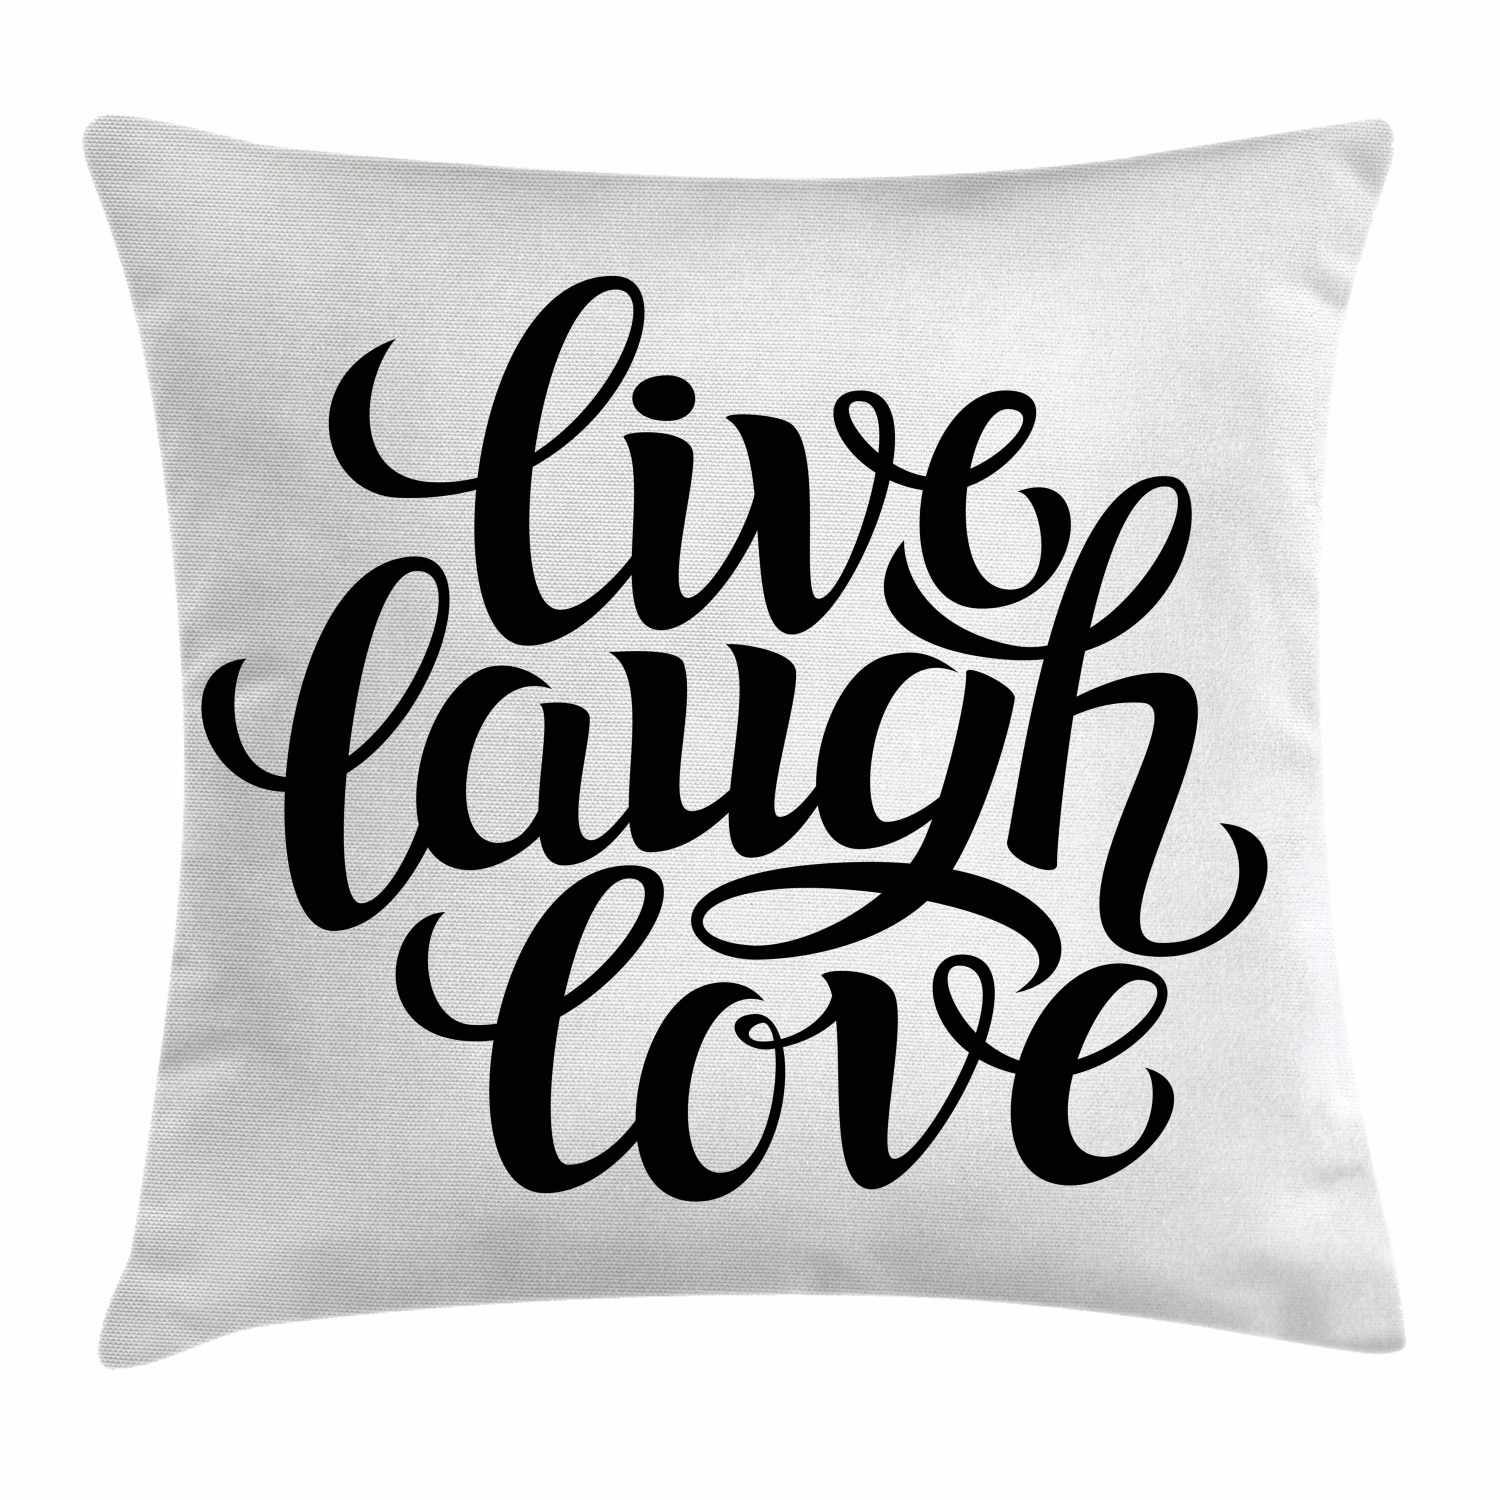 Live Laugh Love Decor Throw Pillow Cushion Cover Simplistic Inspiration Quote Minimalist Featured Typography Design Decorative Square Accent Pillow Case 18 X 18 Inches Black White By Ambesonne Walmart Com Walmart Com